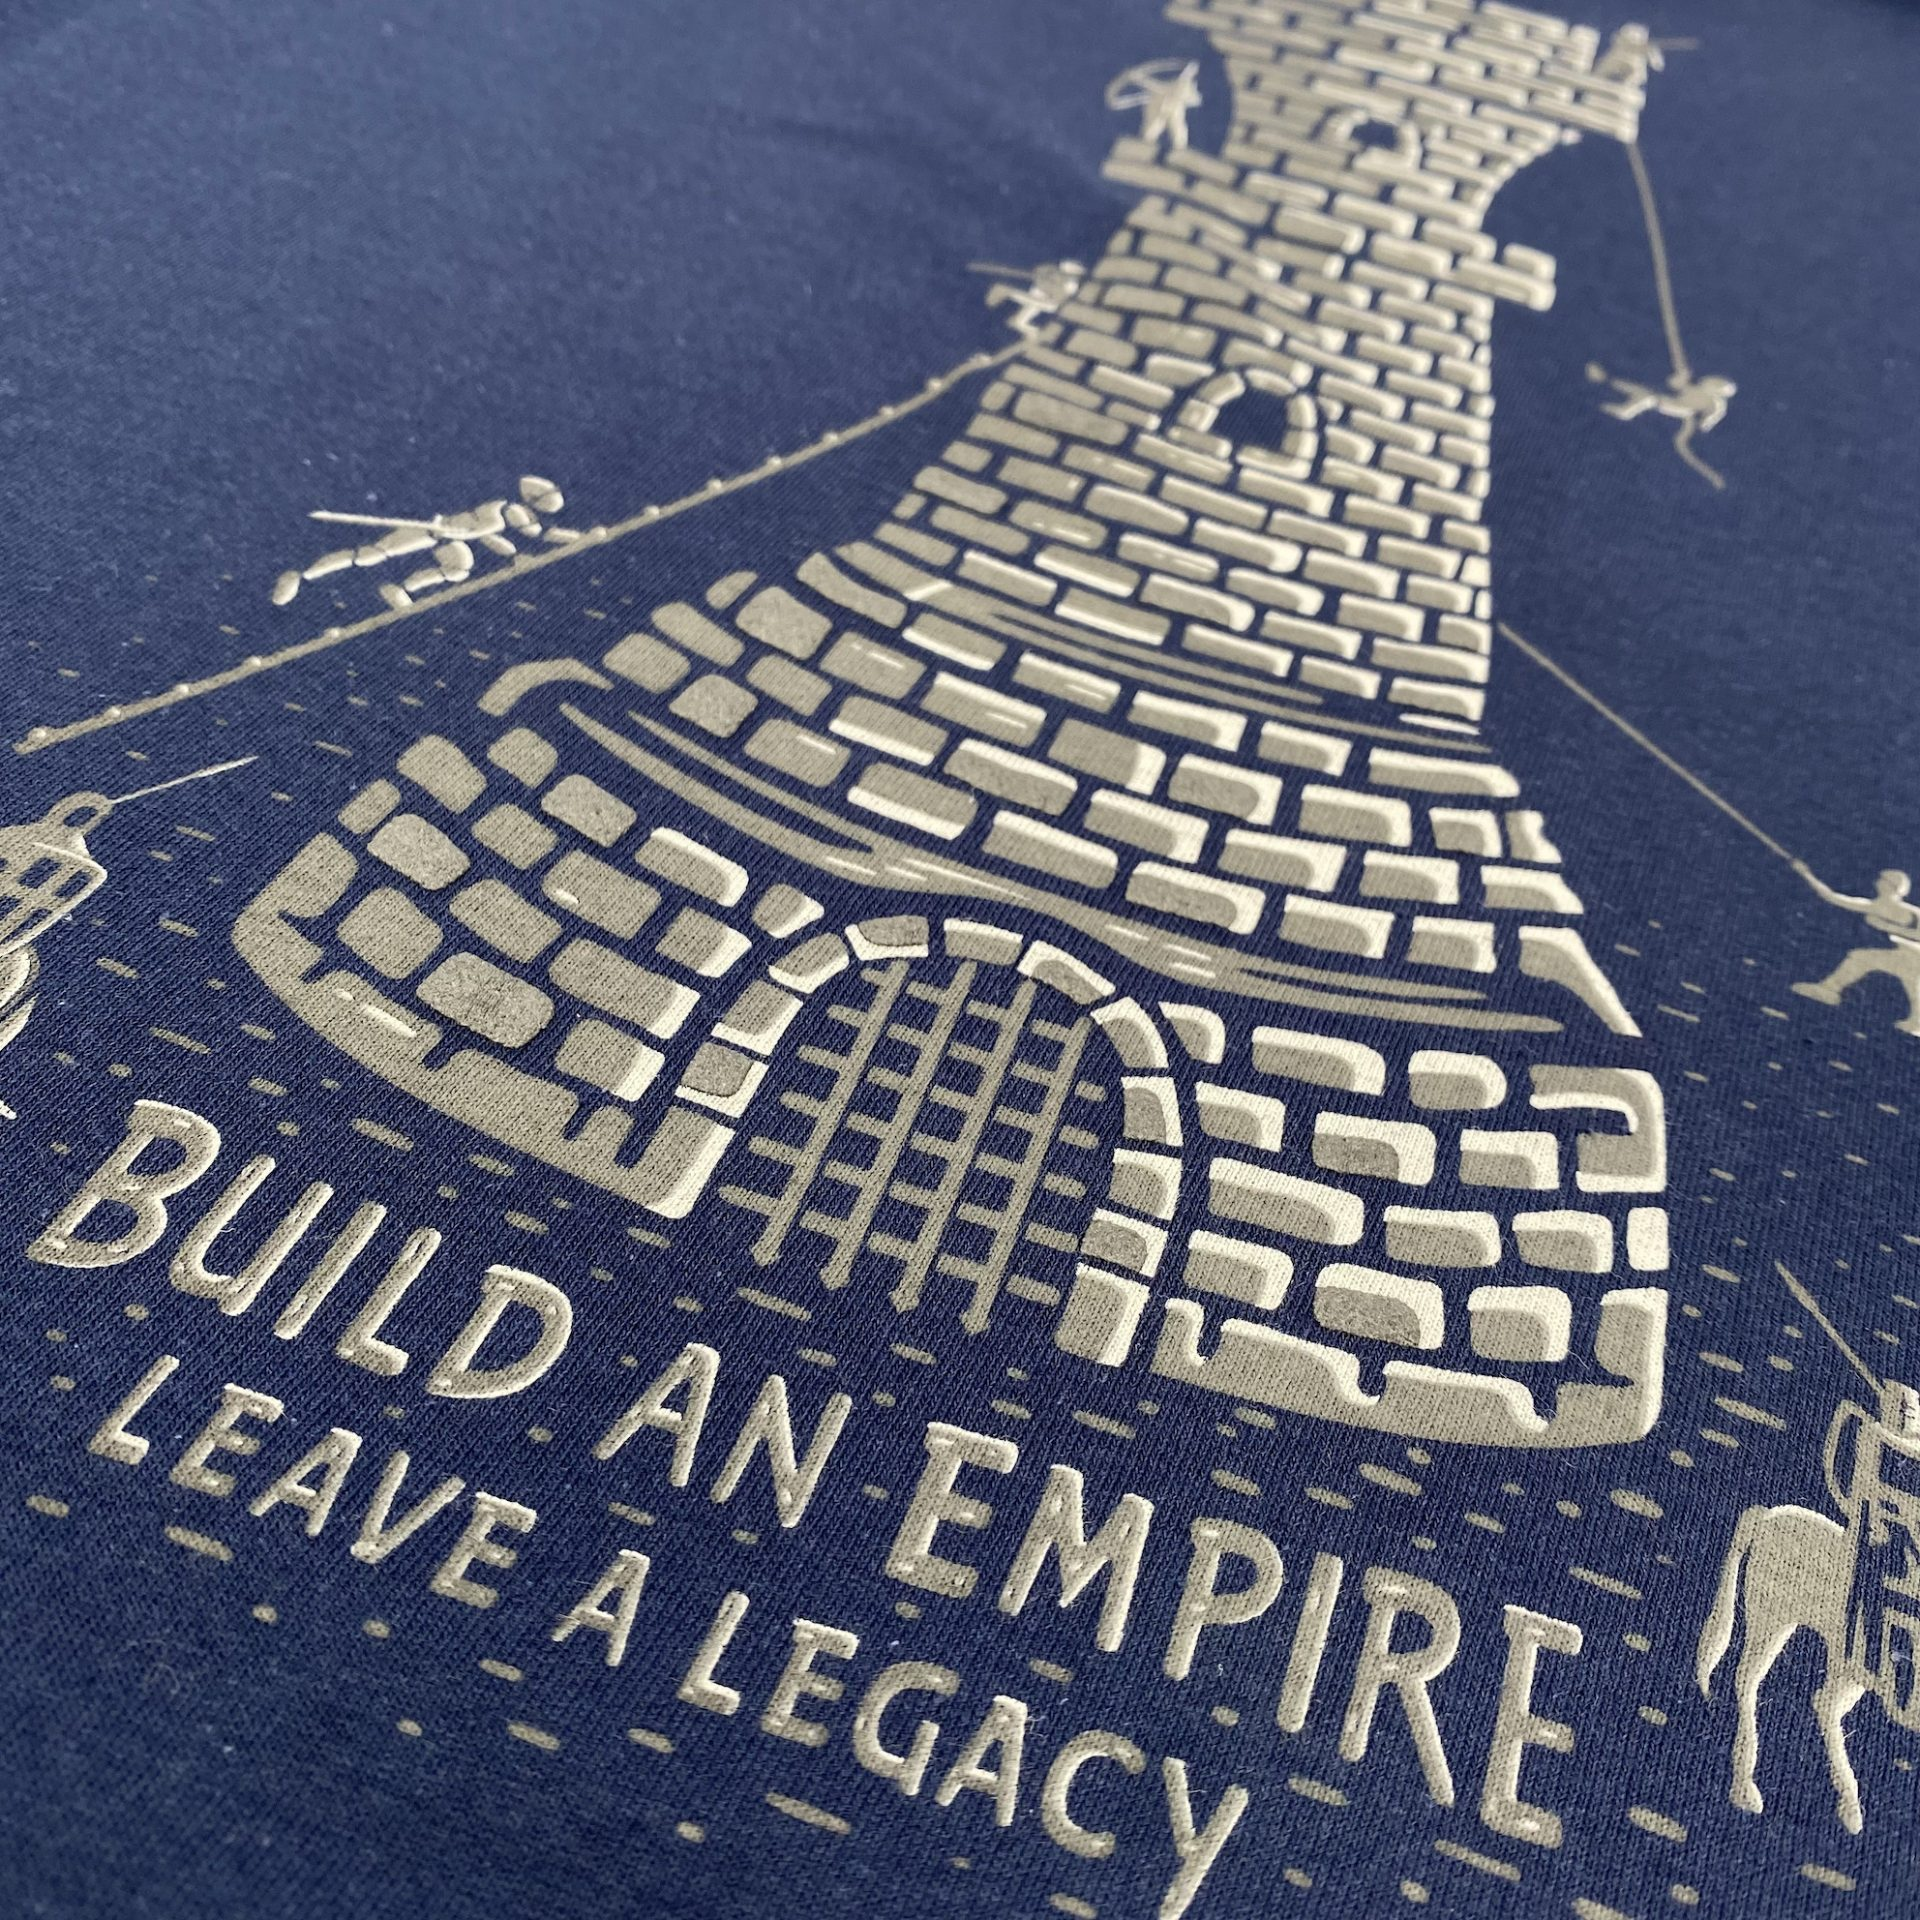 T-shirts designed and printed by Paul Bristow's using expanding inks